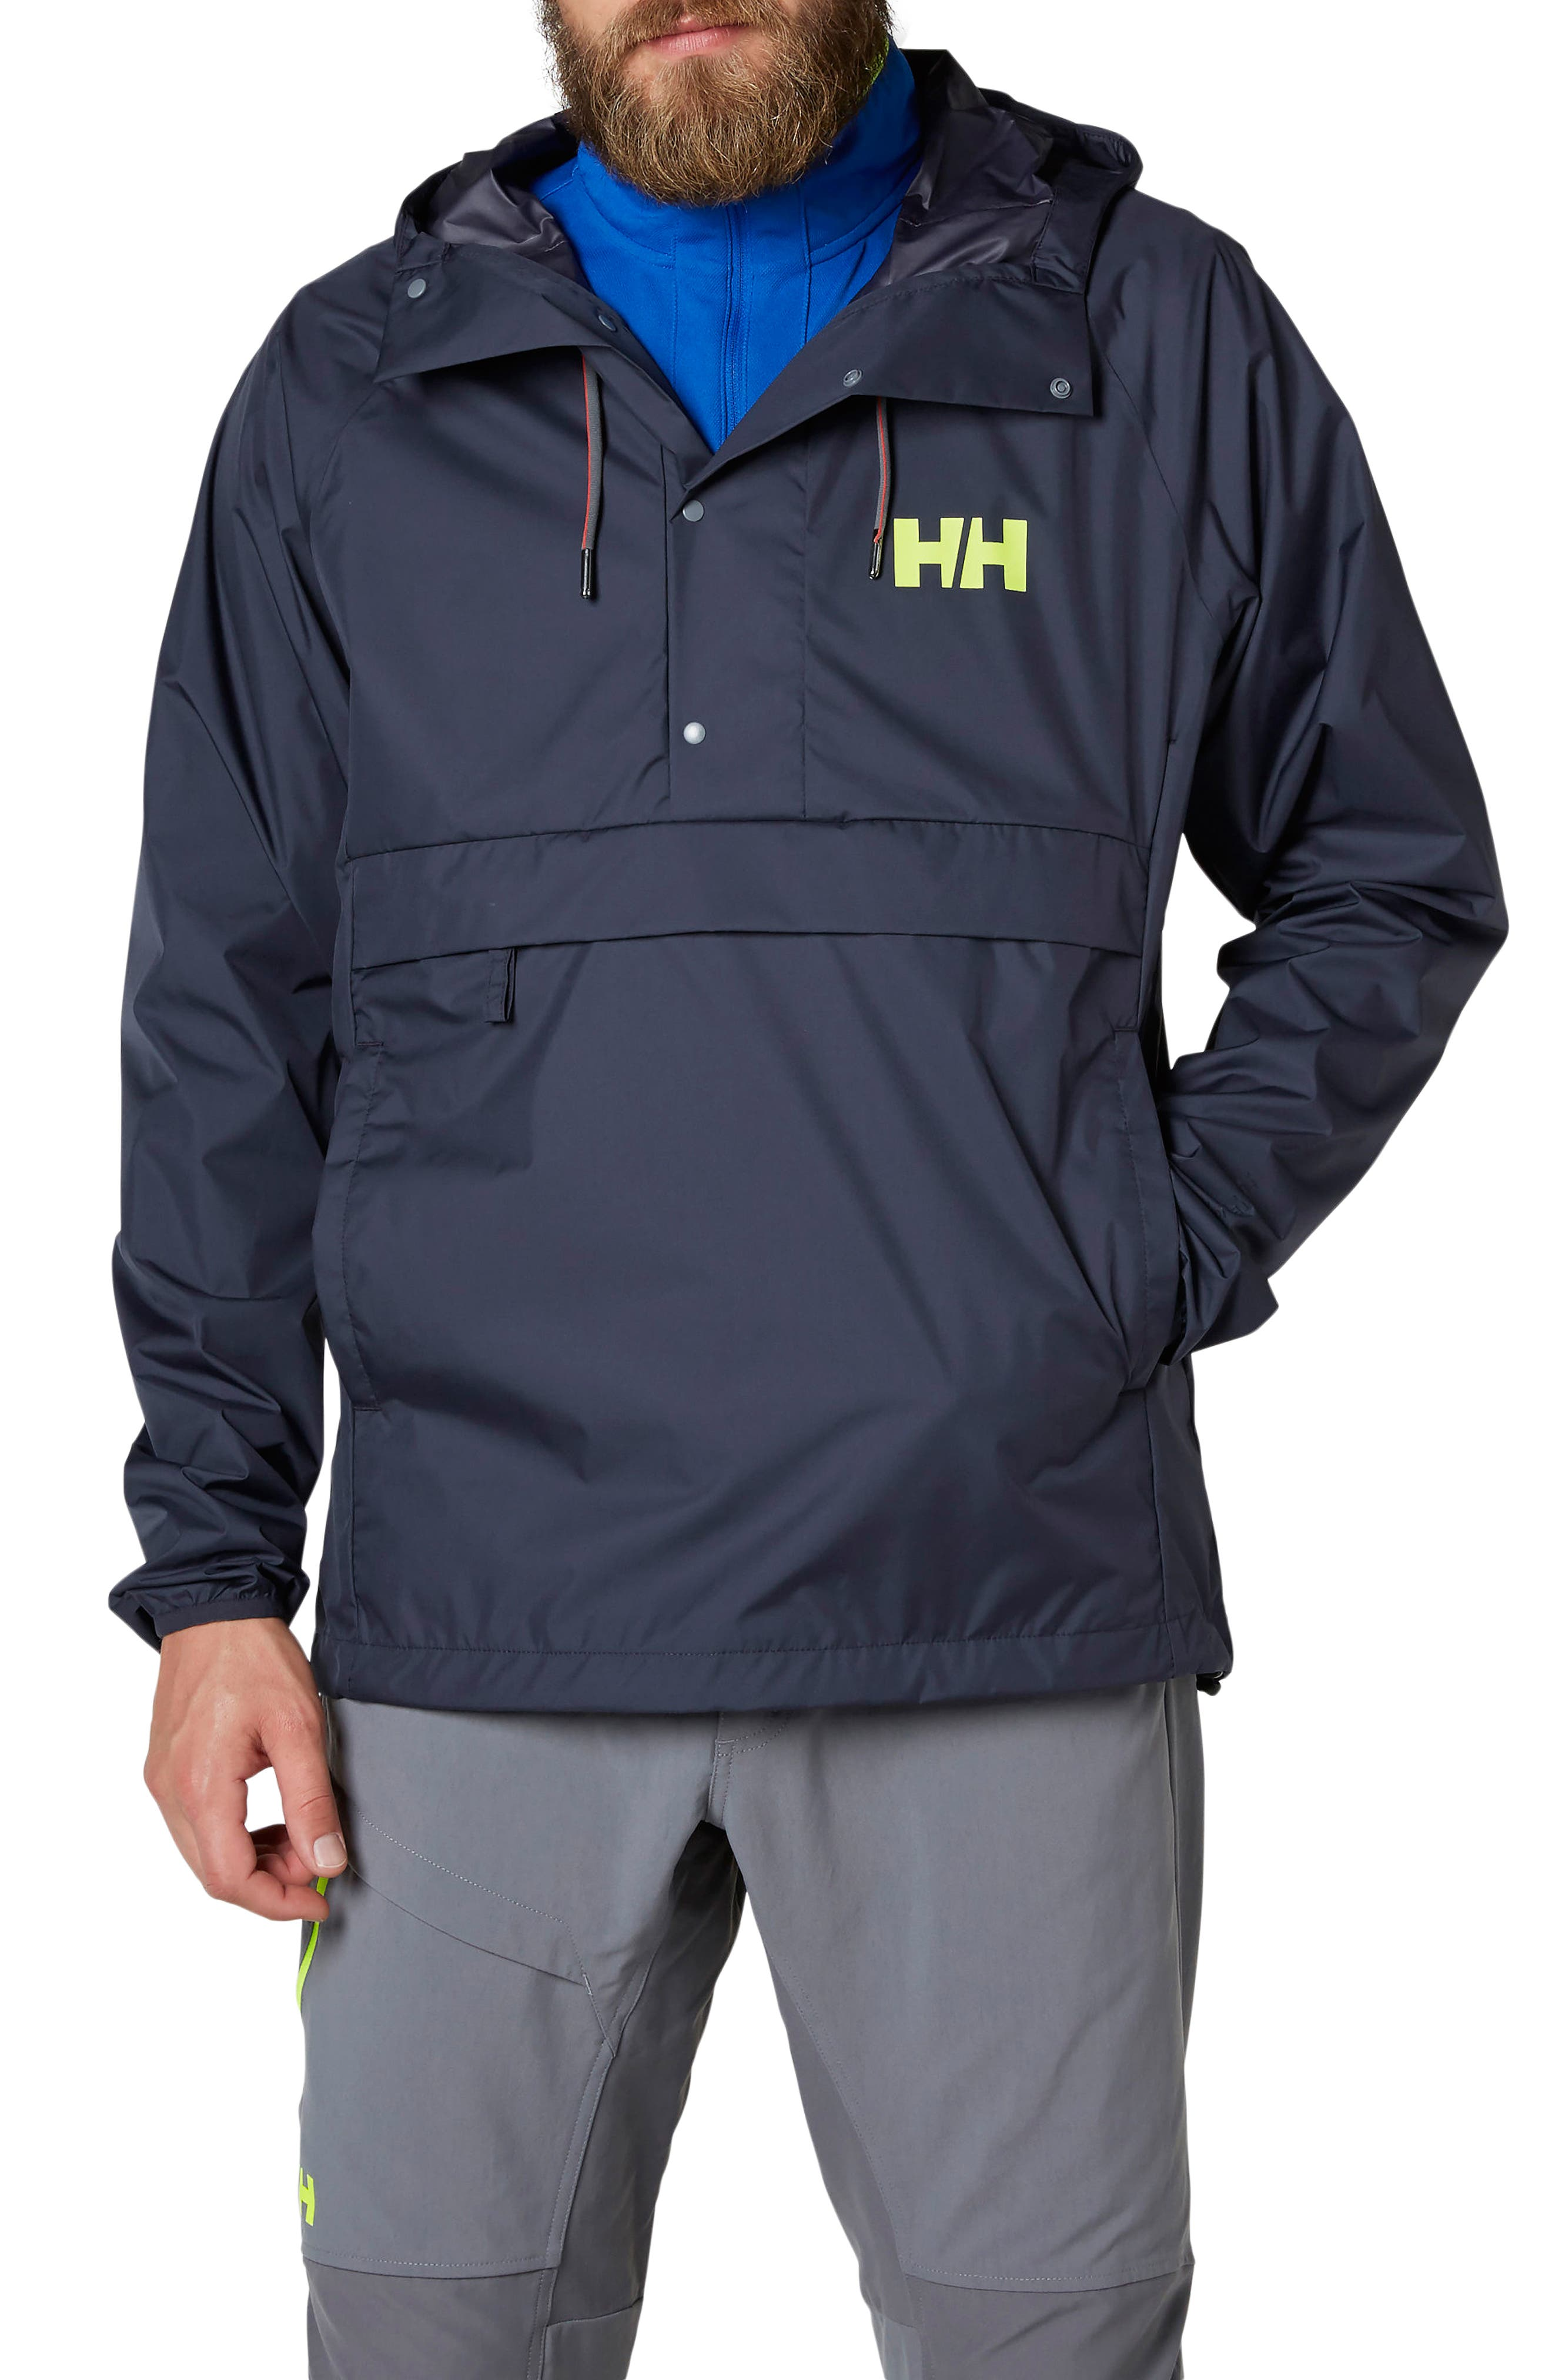 Loke Packable Anorak,                         Main,                         color, Graphite Blue